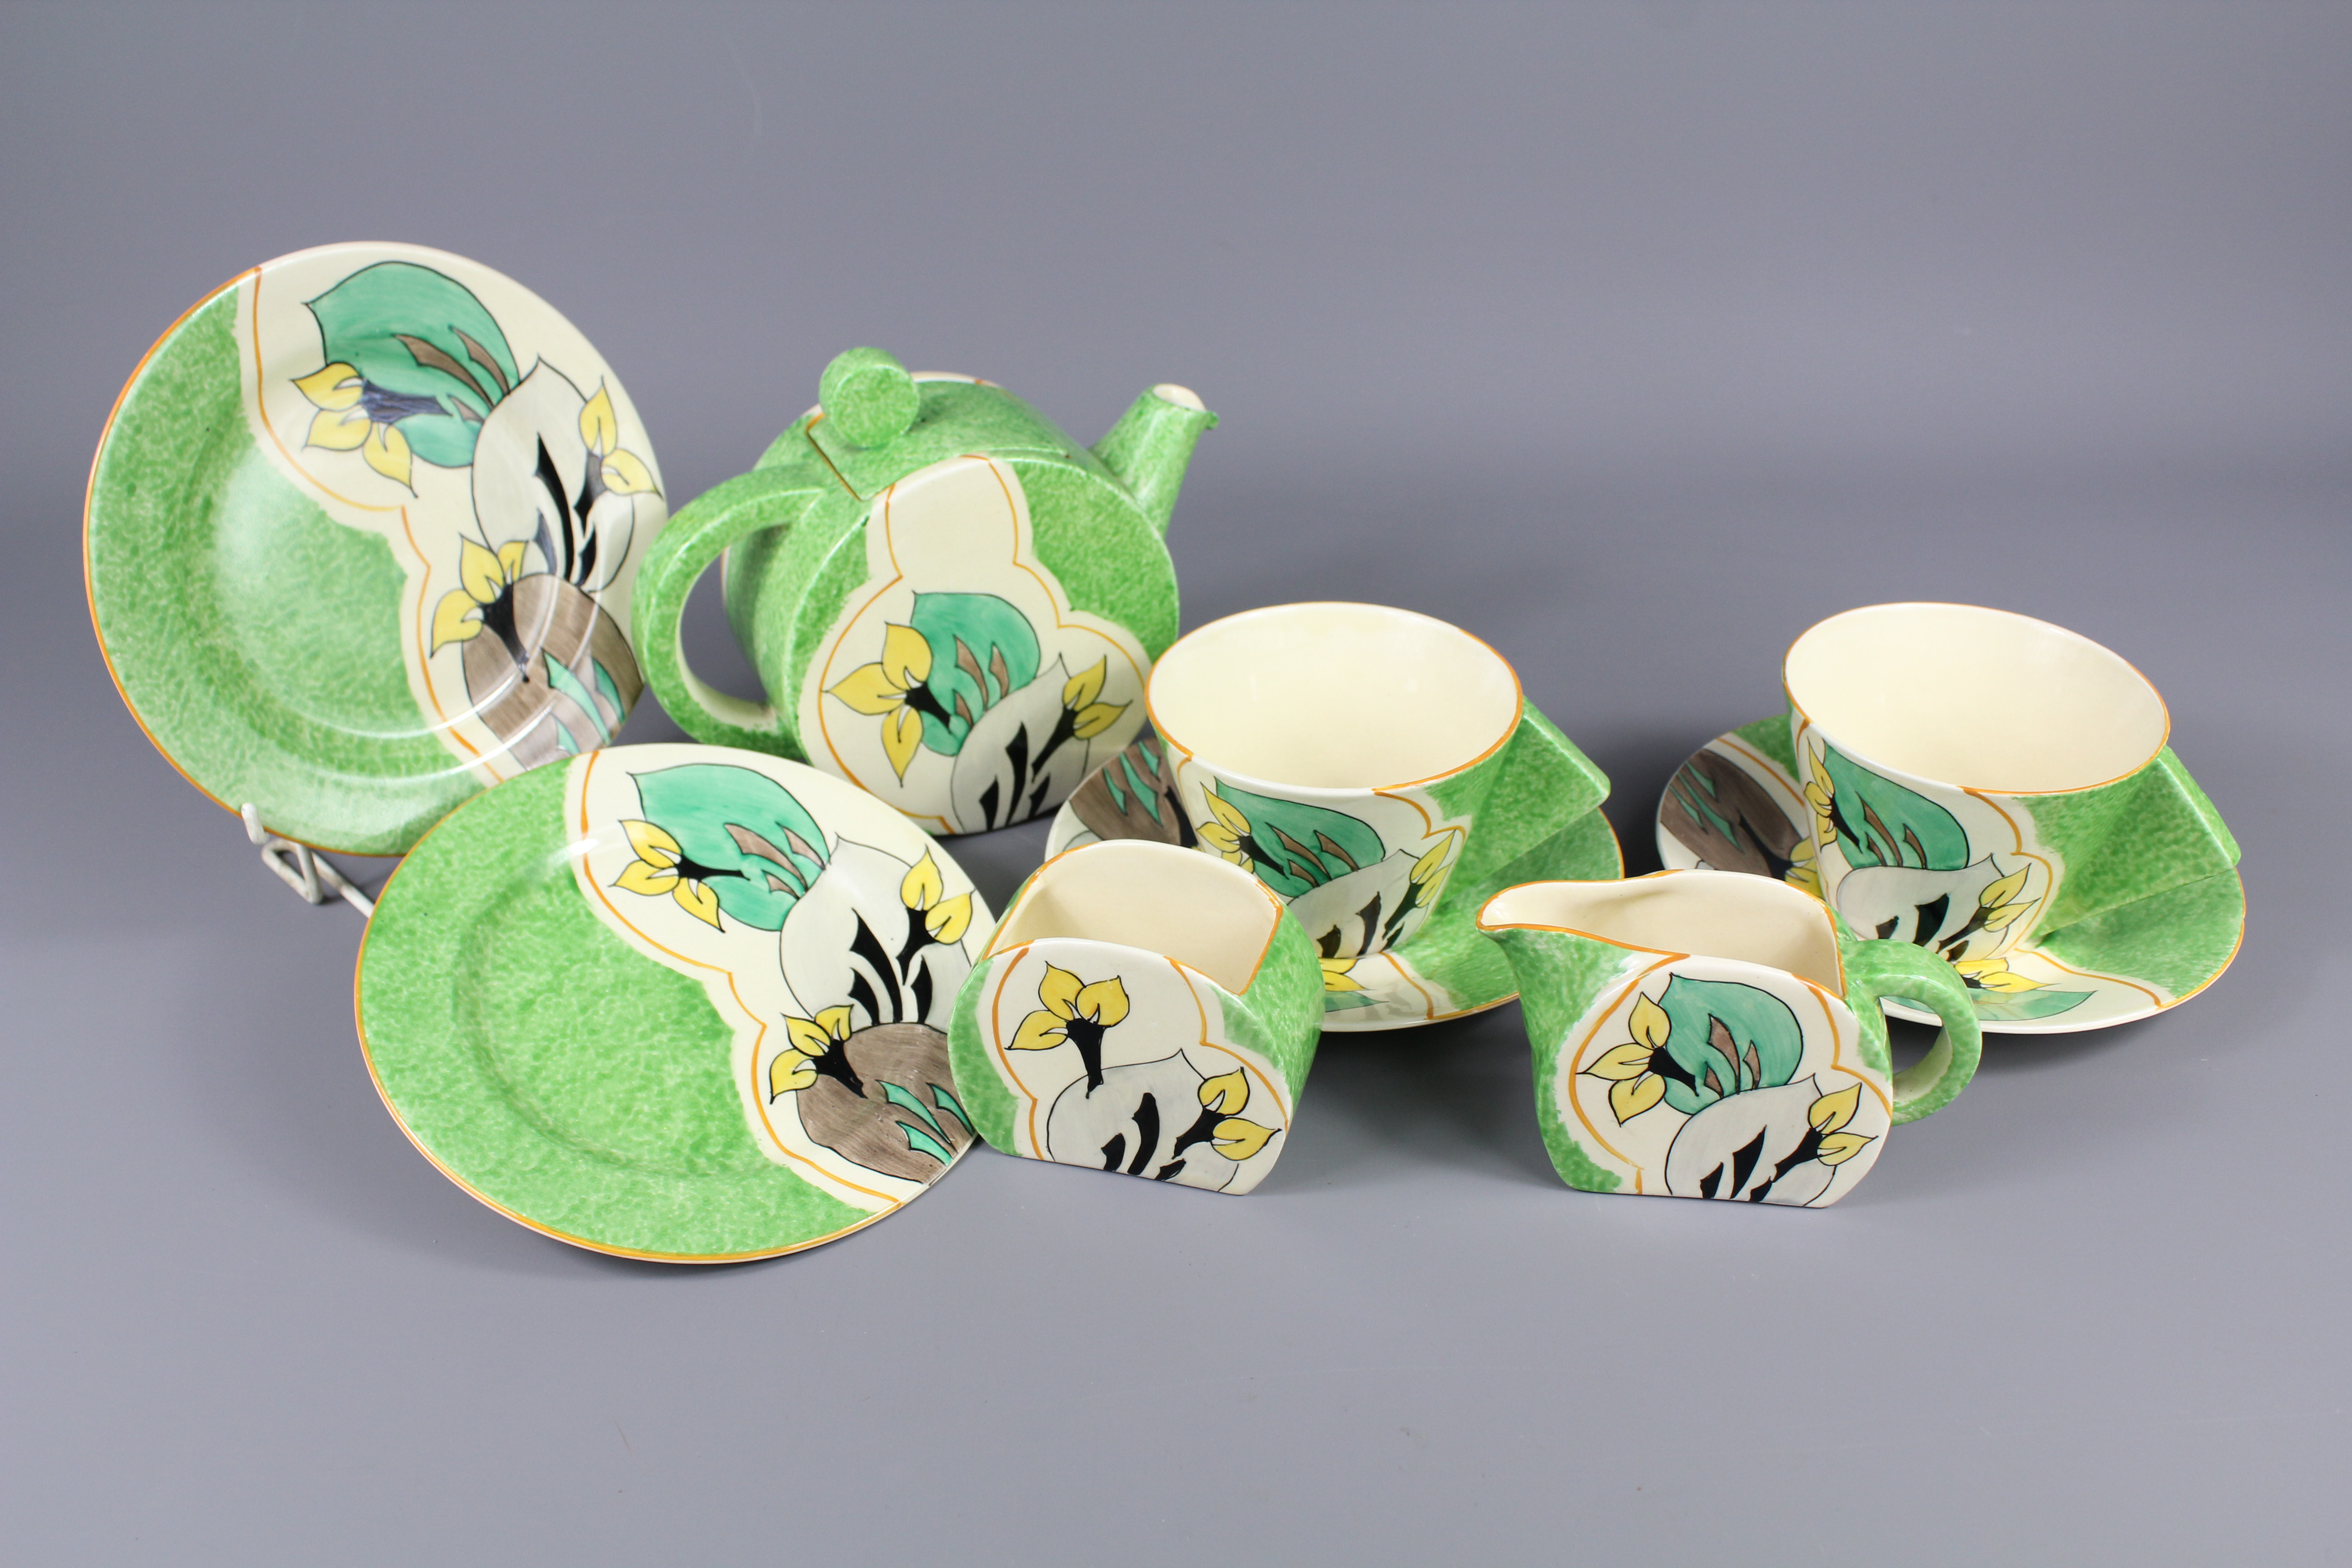 Lot-312-Clarice-Cliff-Fantastique-Tea-Set-SOLD-FOR-£1000